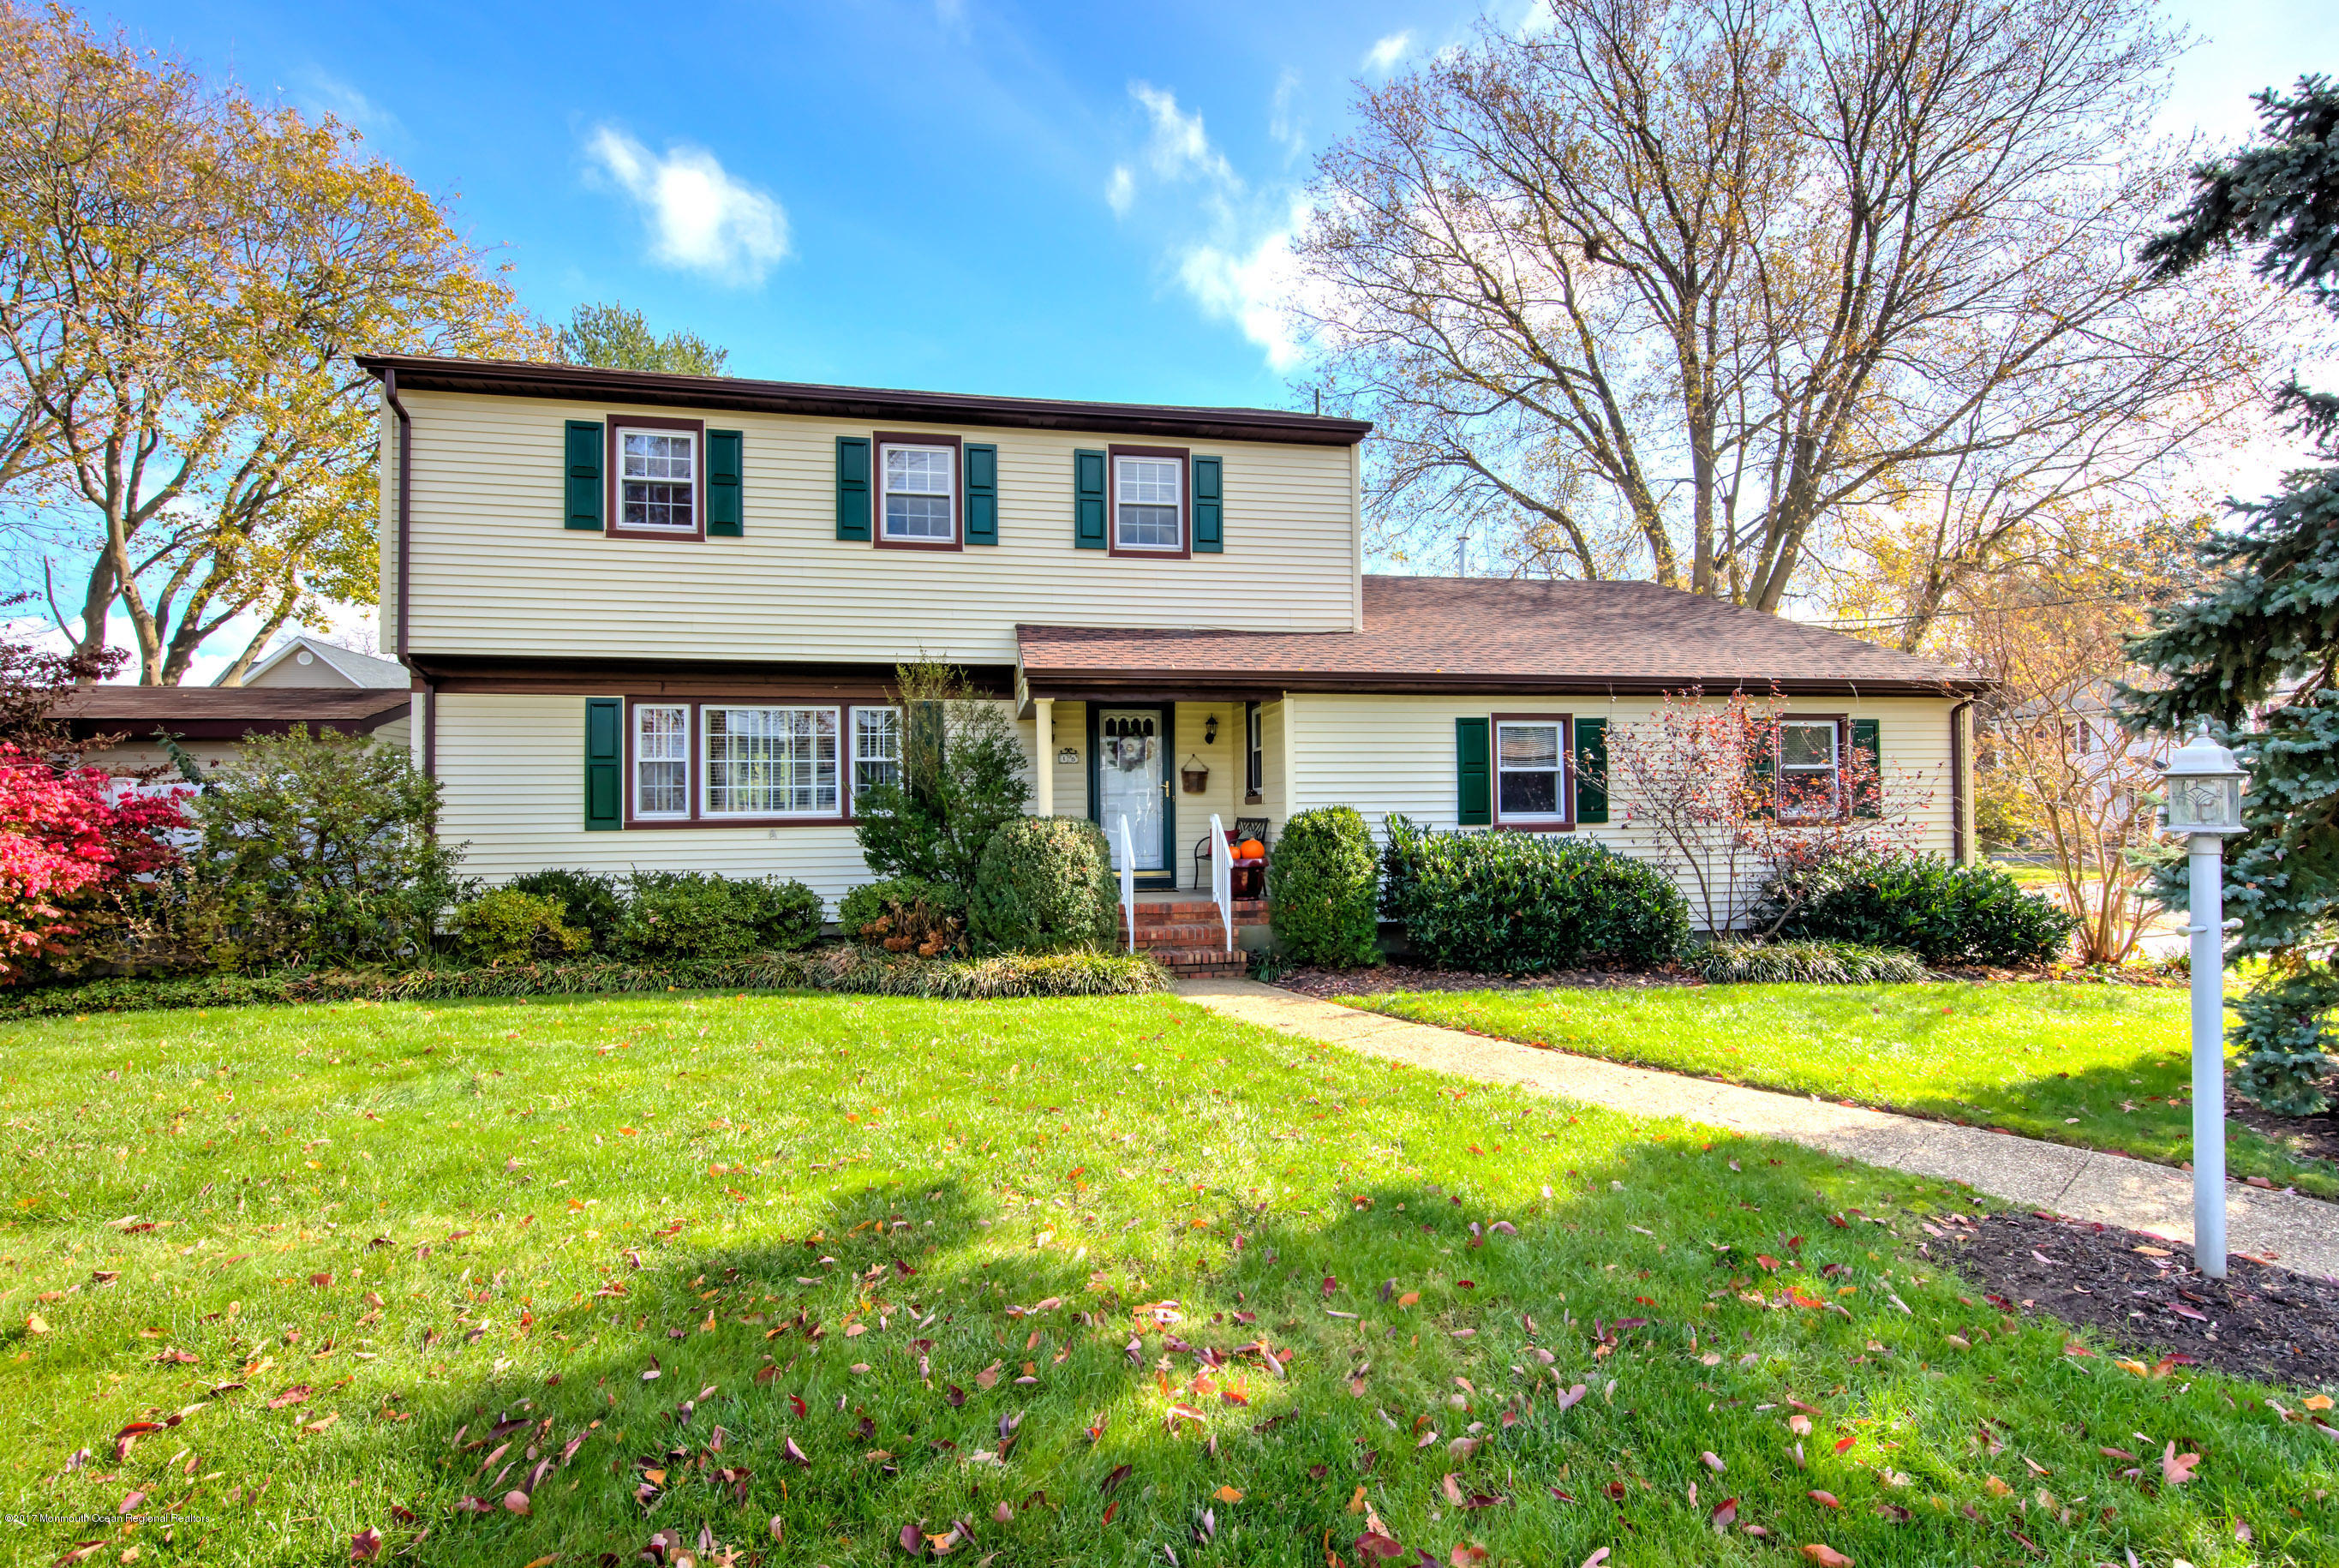 15 BAY VIEW PLACE, OCEANPORT, NJ 07757 | george coffenberg